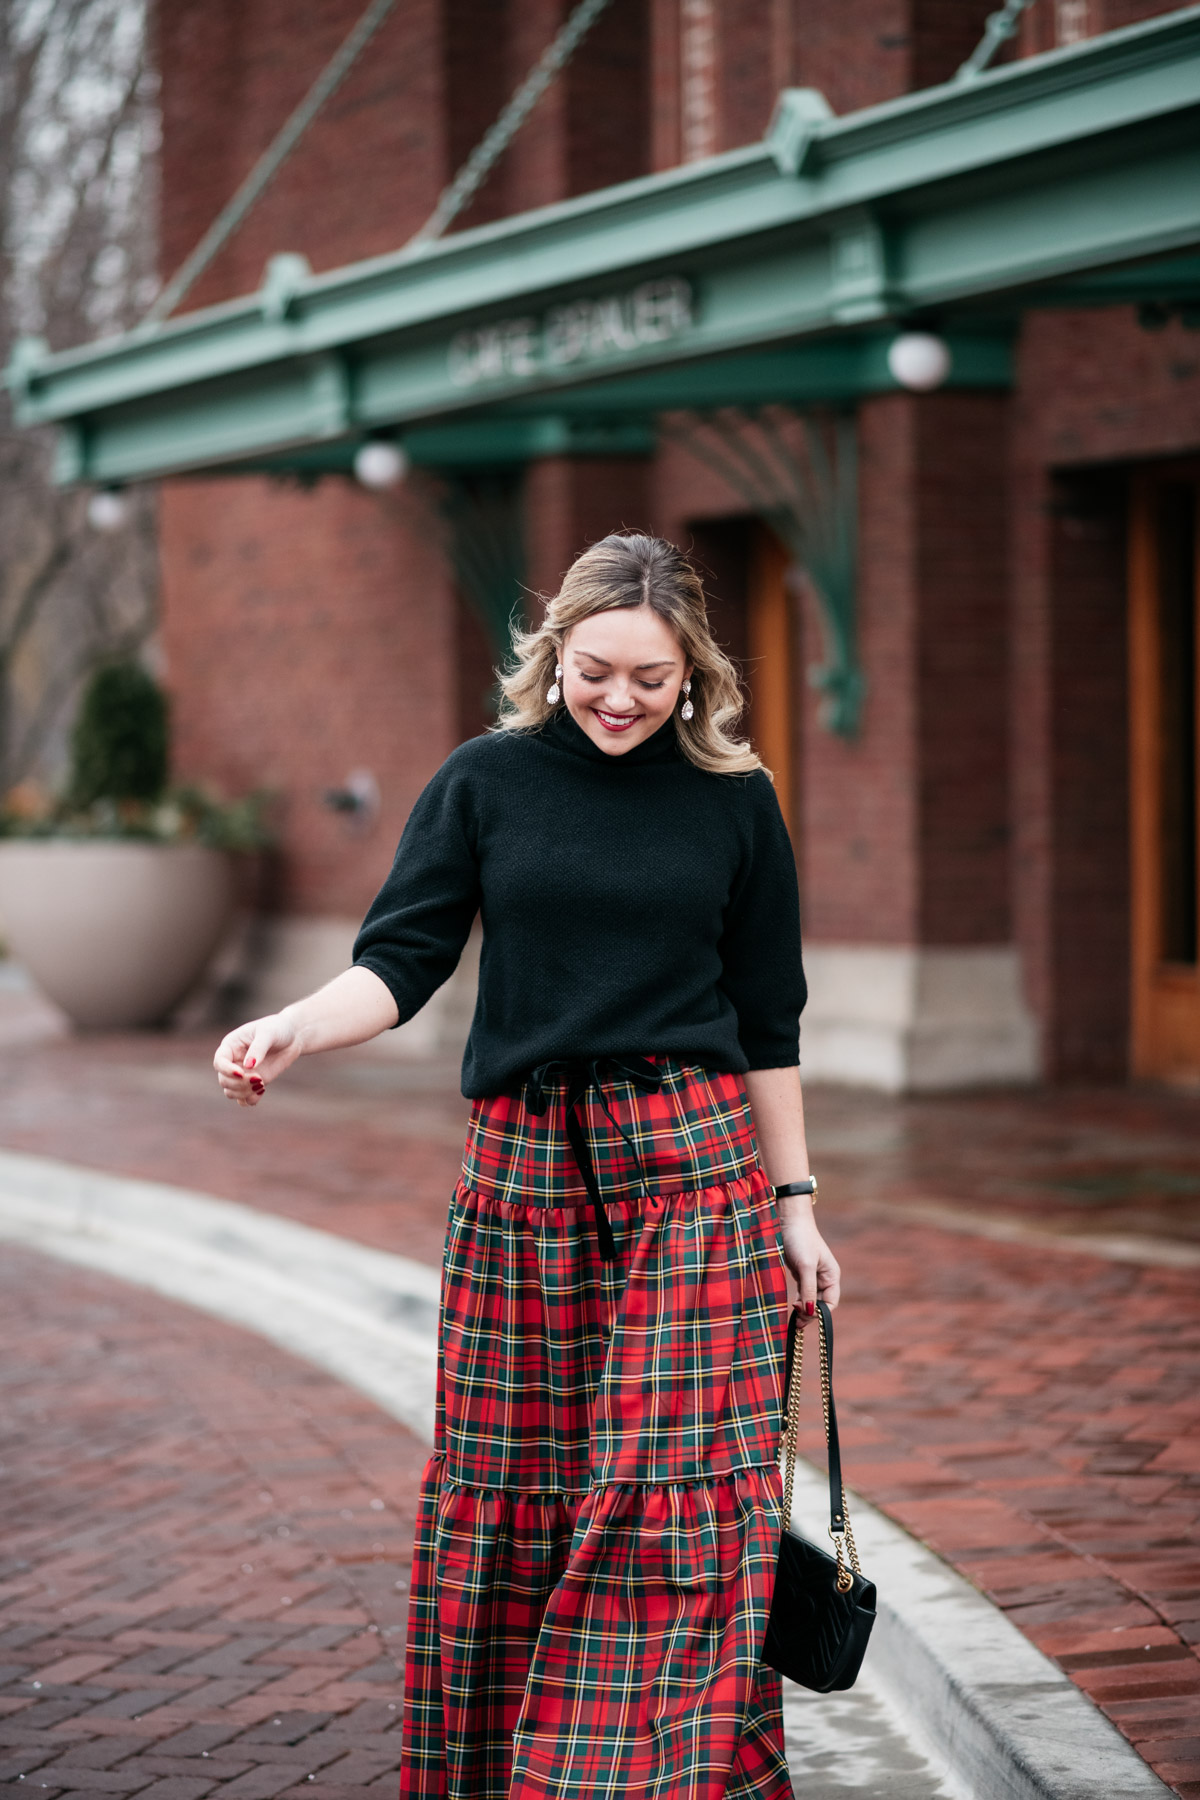 Jessica Sturdy styling a black turtleneck with a plaid skirt for a holiday party outfit.